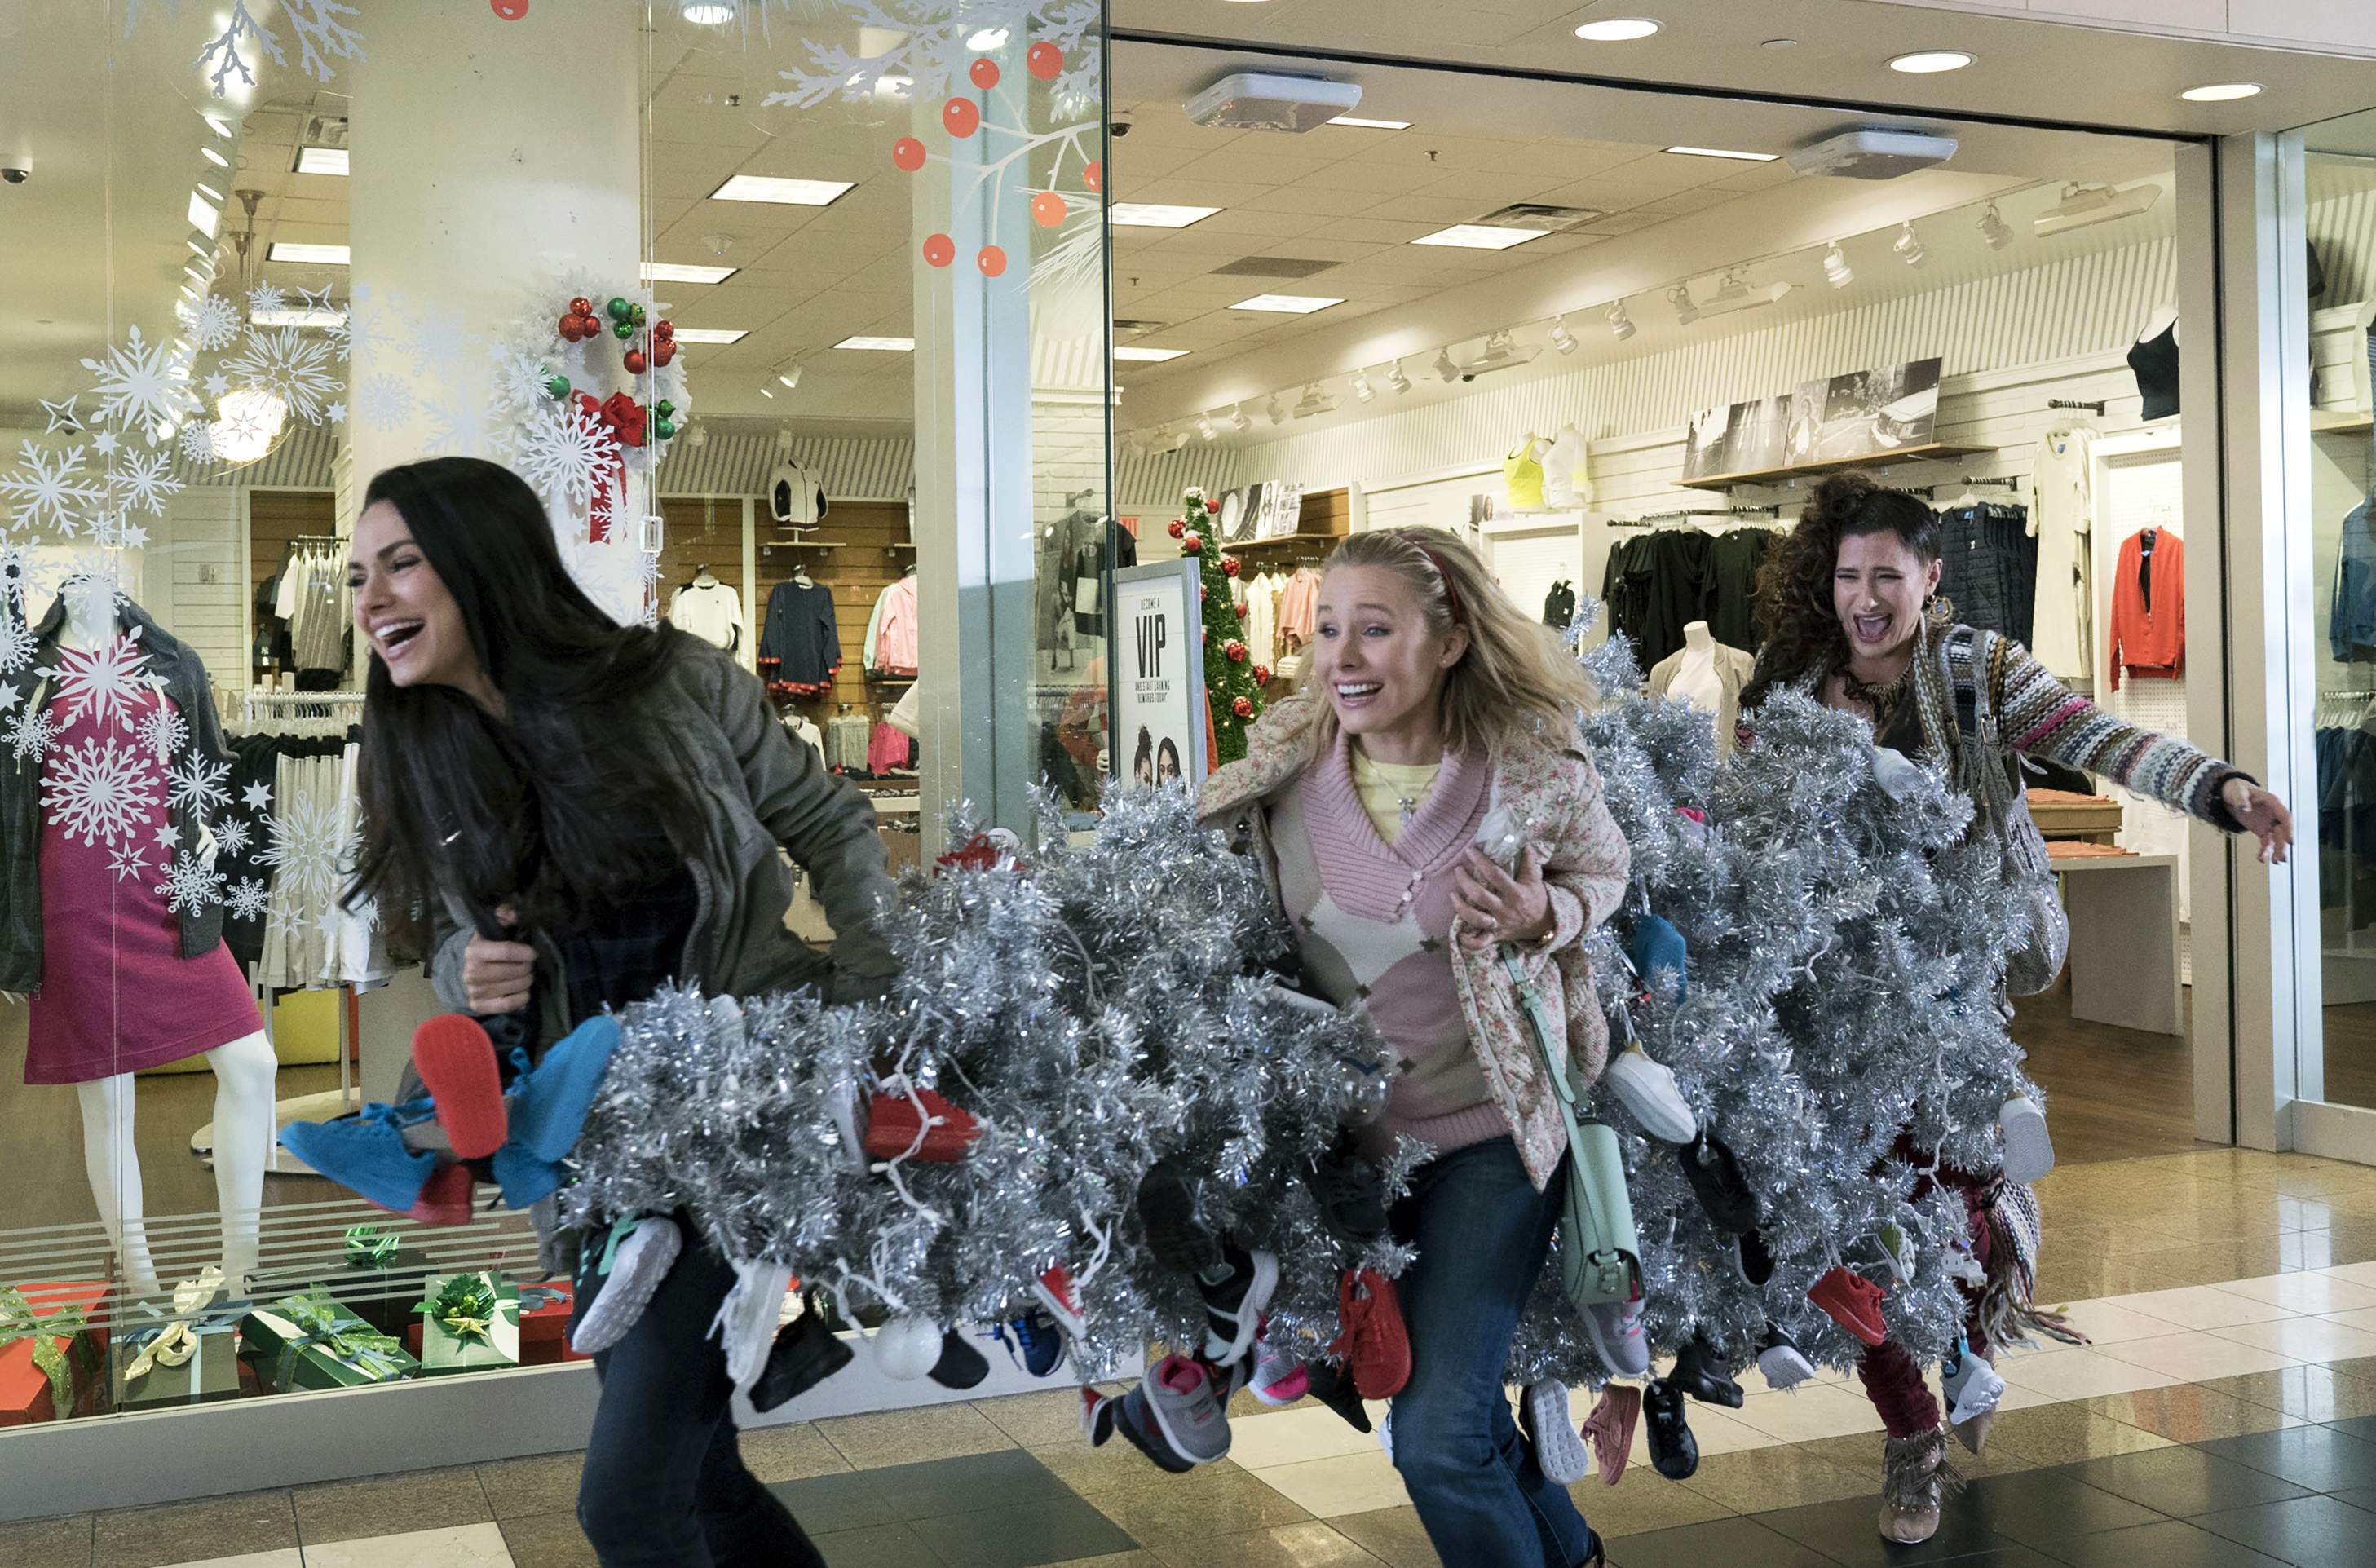 The Spirit Of Christmas Cast.A Bad Moms Christmas Has The Right Cast But The Wrong Spirit